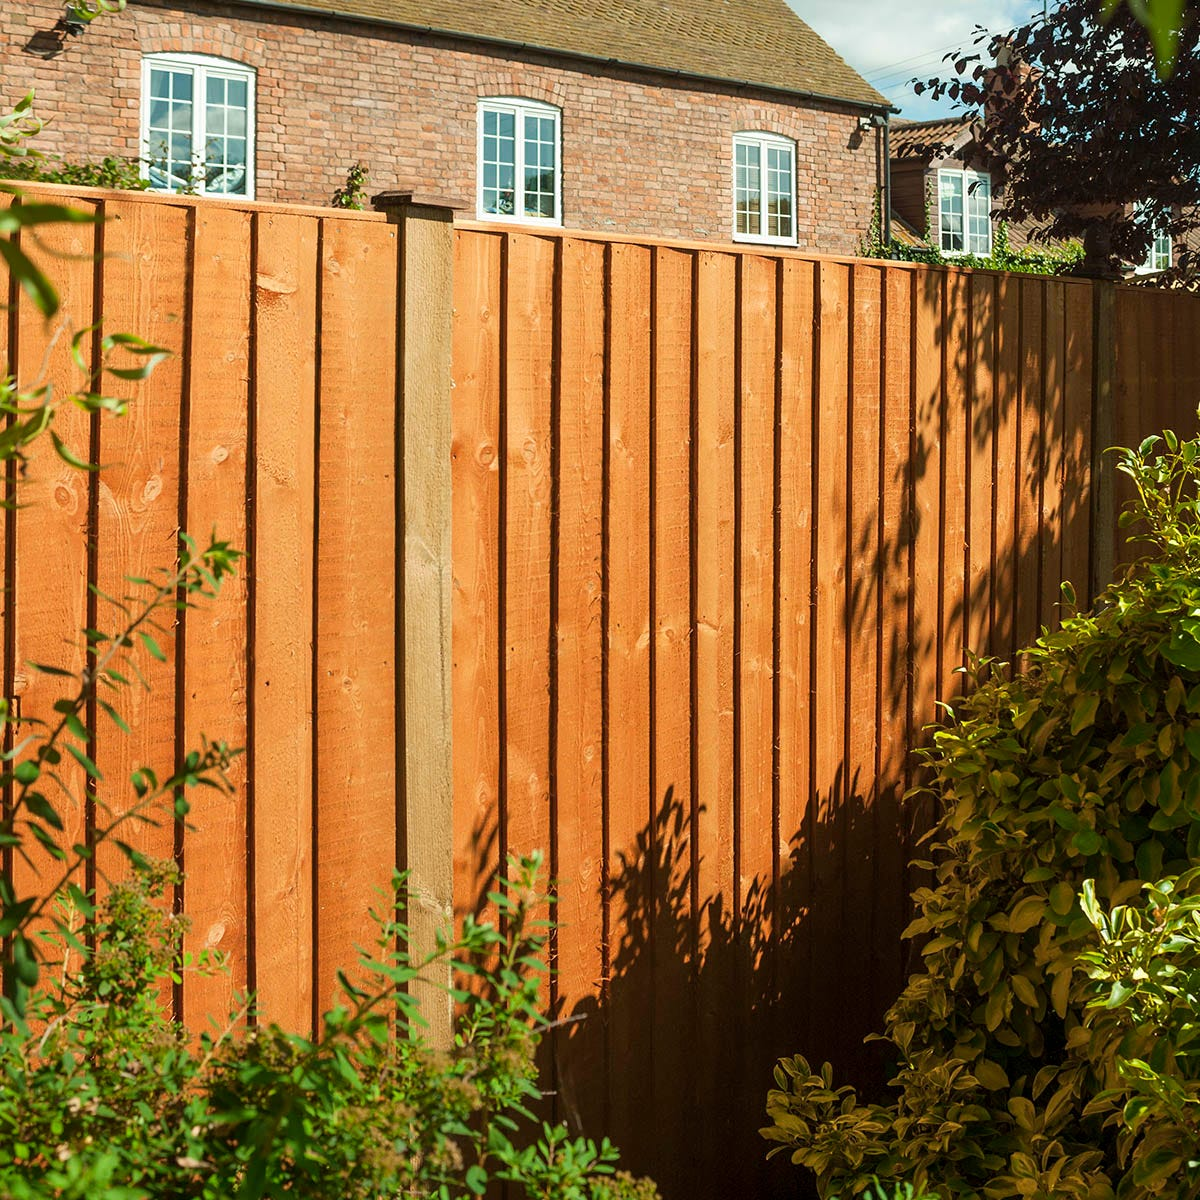 Rowlinson 3pk Vertical Board Panel Dipped Fence - 6x4